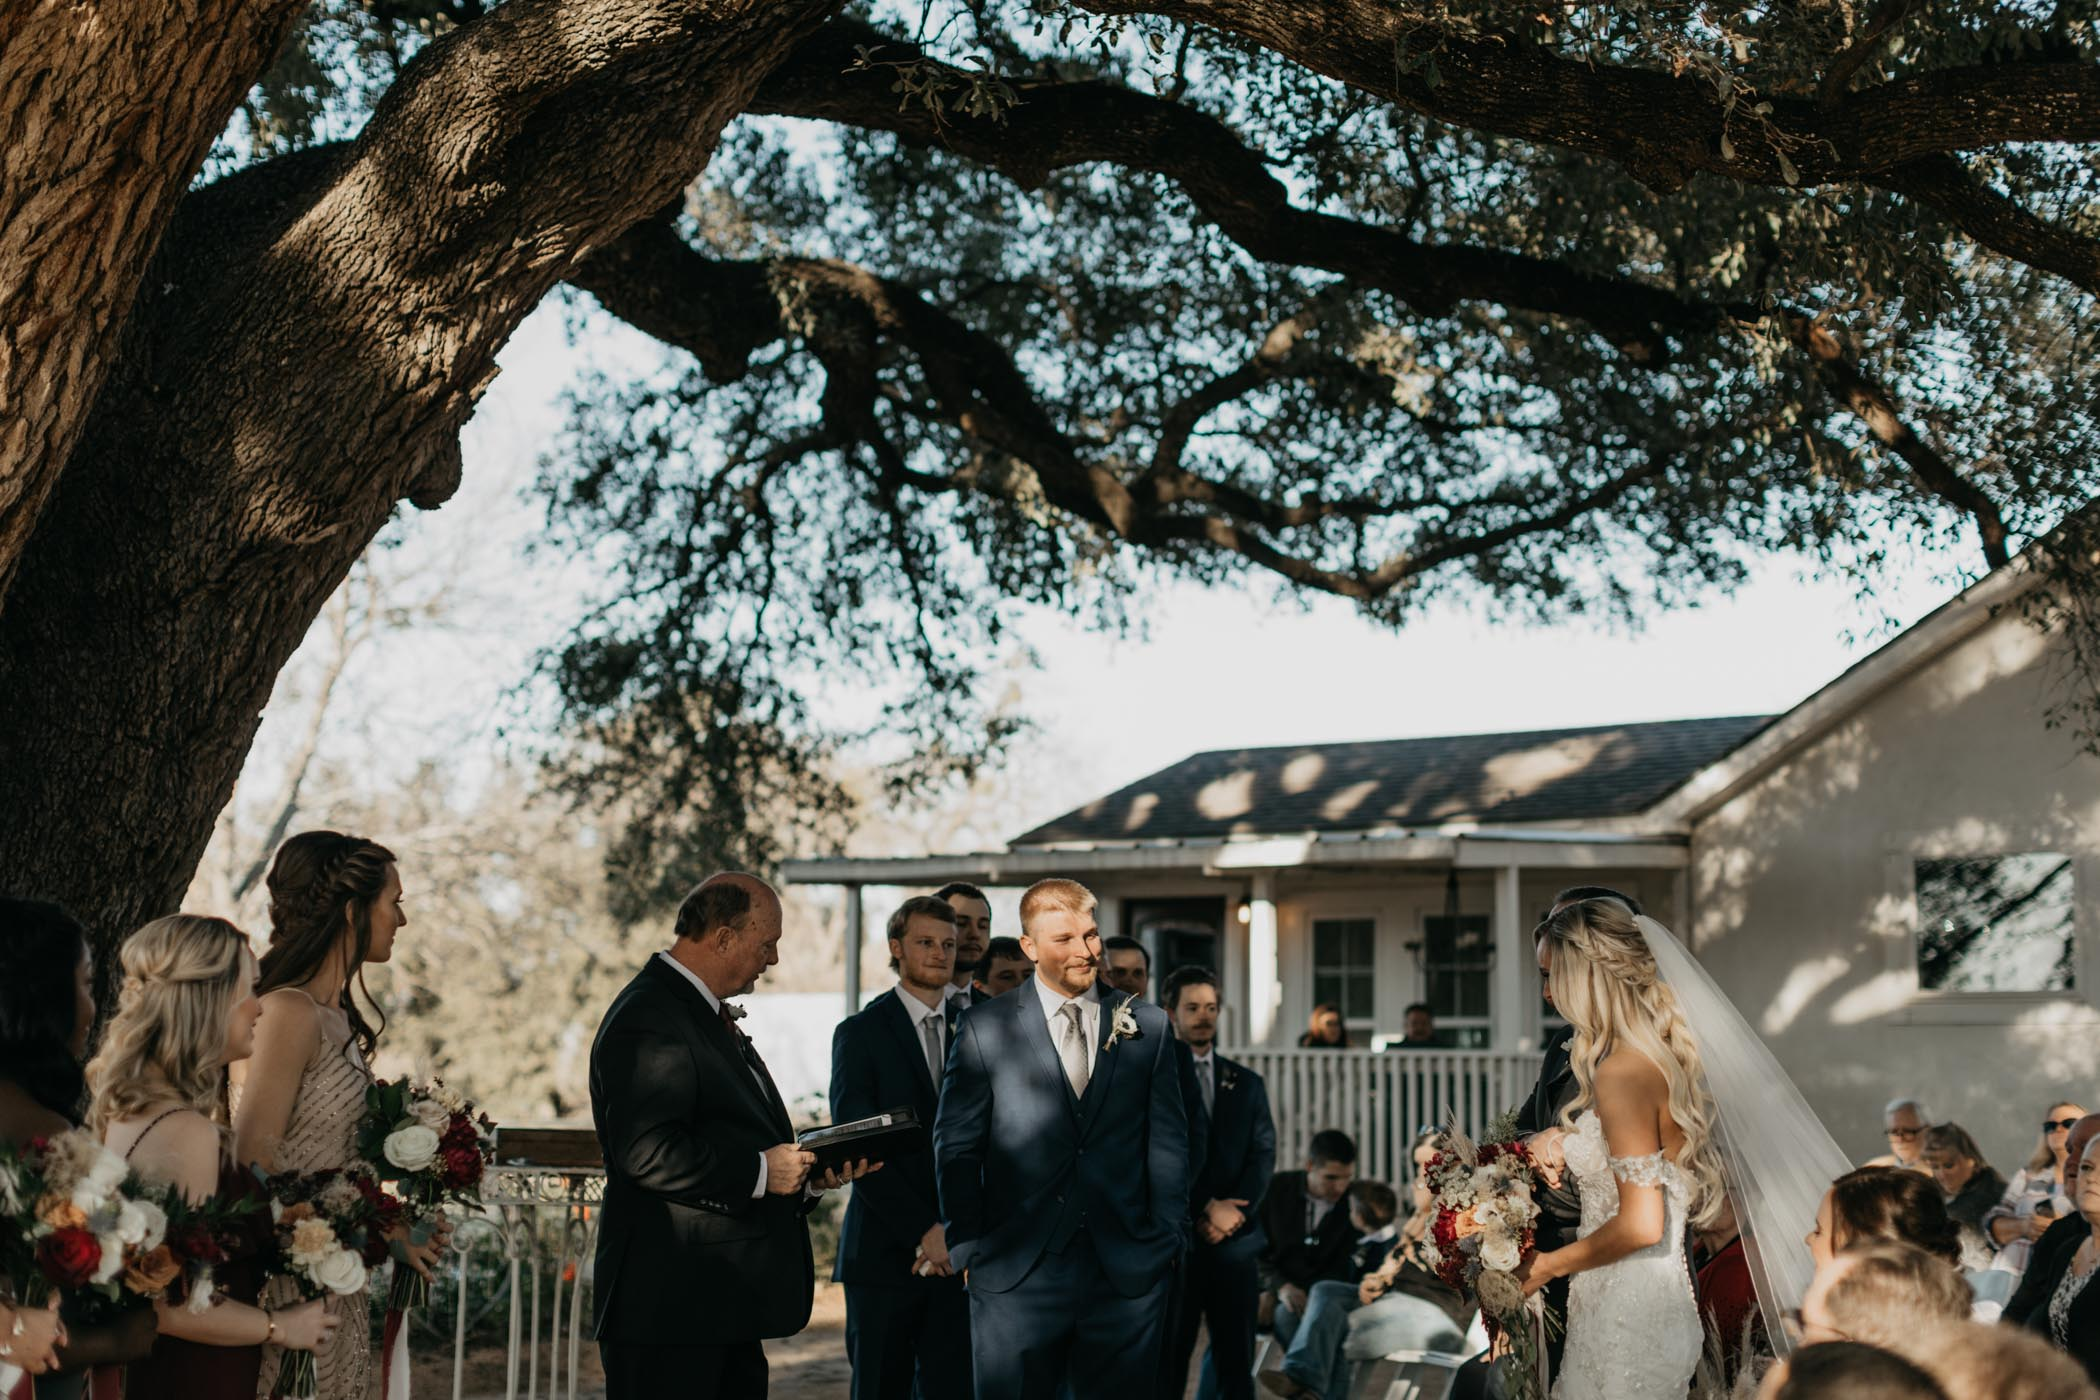 brides father giving her away at their outdoor wedding ceremony in Texas